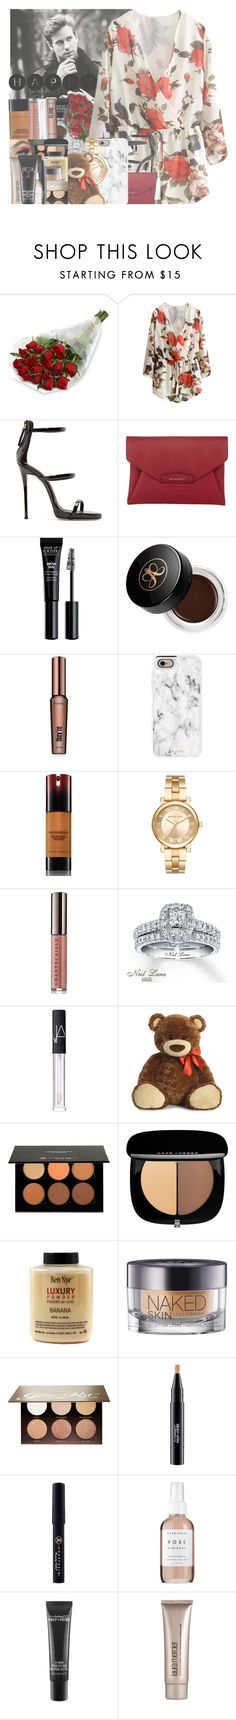 """I was suppose to post this yesterday but HAPPY LATE VALENTINE'S DAY GUYS"" by w-on-der-lan-d ❤ liked on Polyvore featuring GET LOST, Giuseppe Zanotti, Givenchy, Anastasia Beverly Hills, Benefit, Casetify, Kevyn Aucoin, Michael Kors, Chantecaille and Neil Lane"